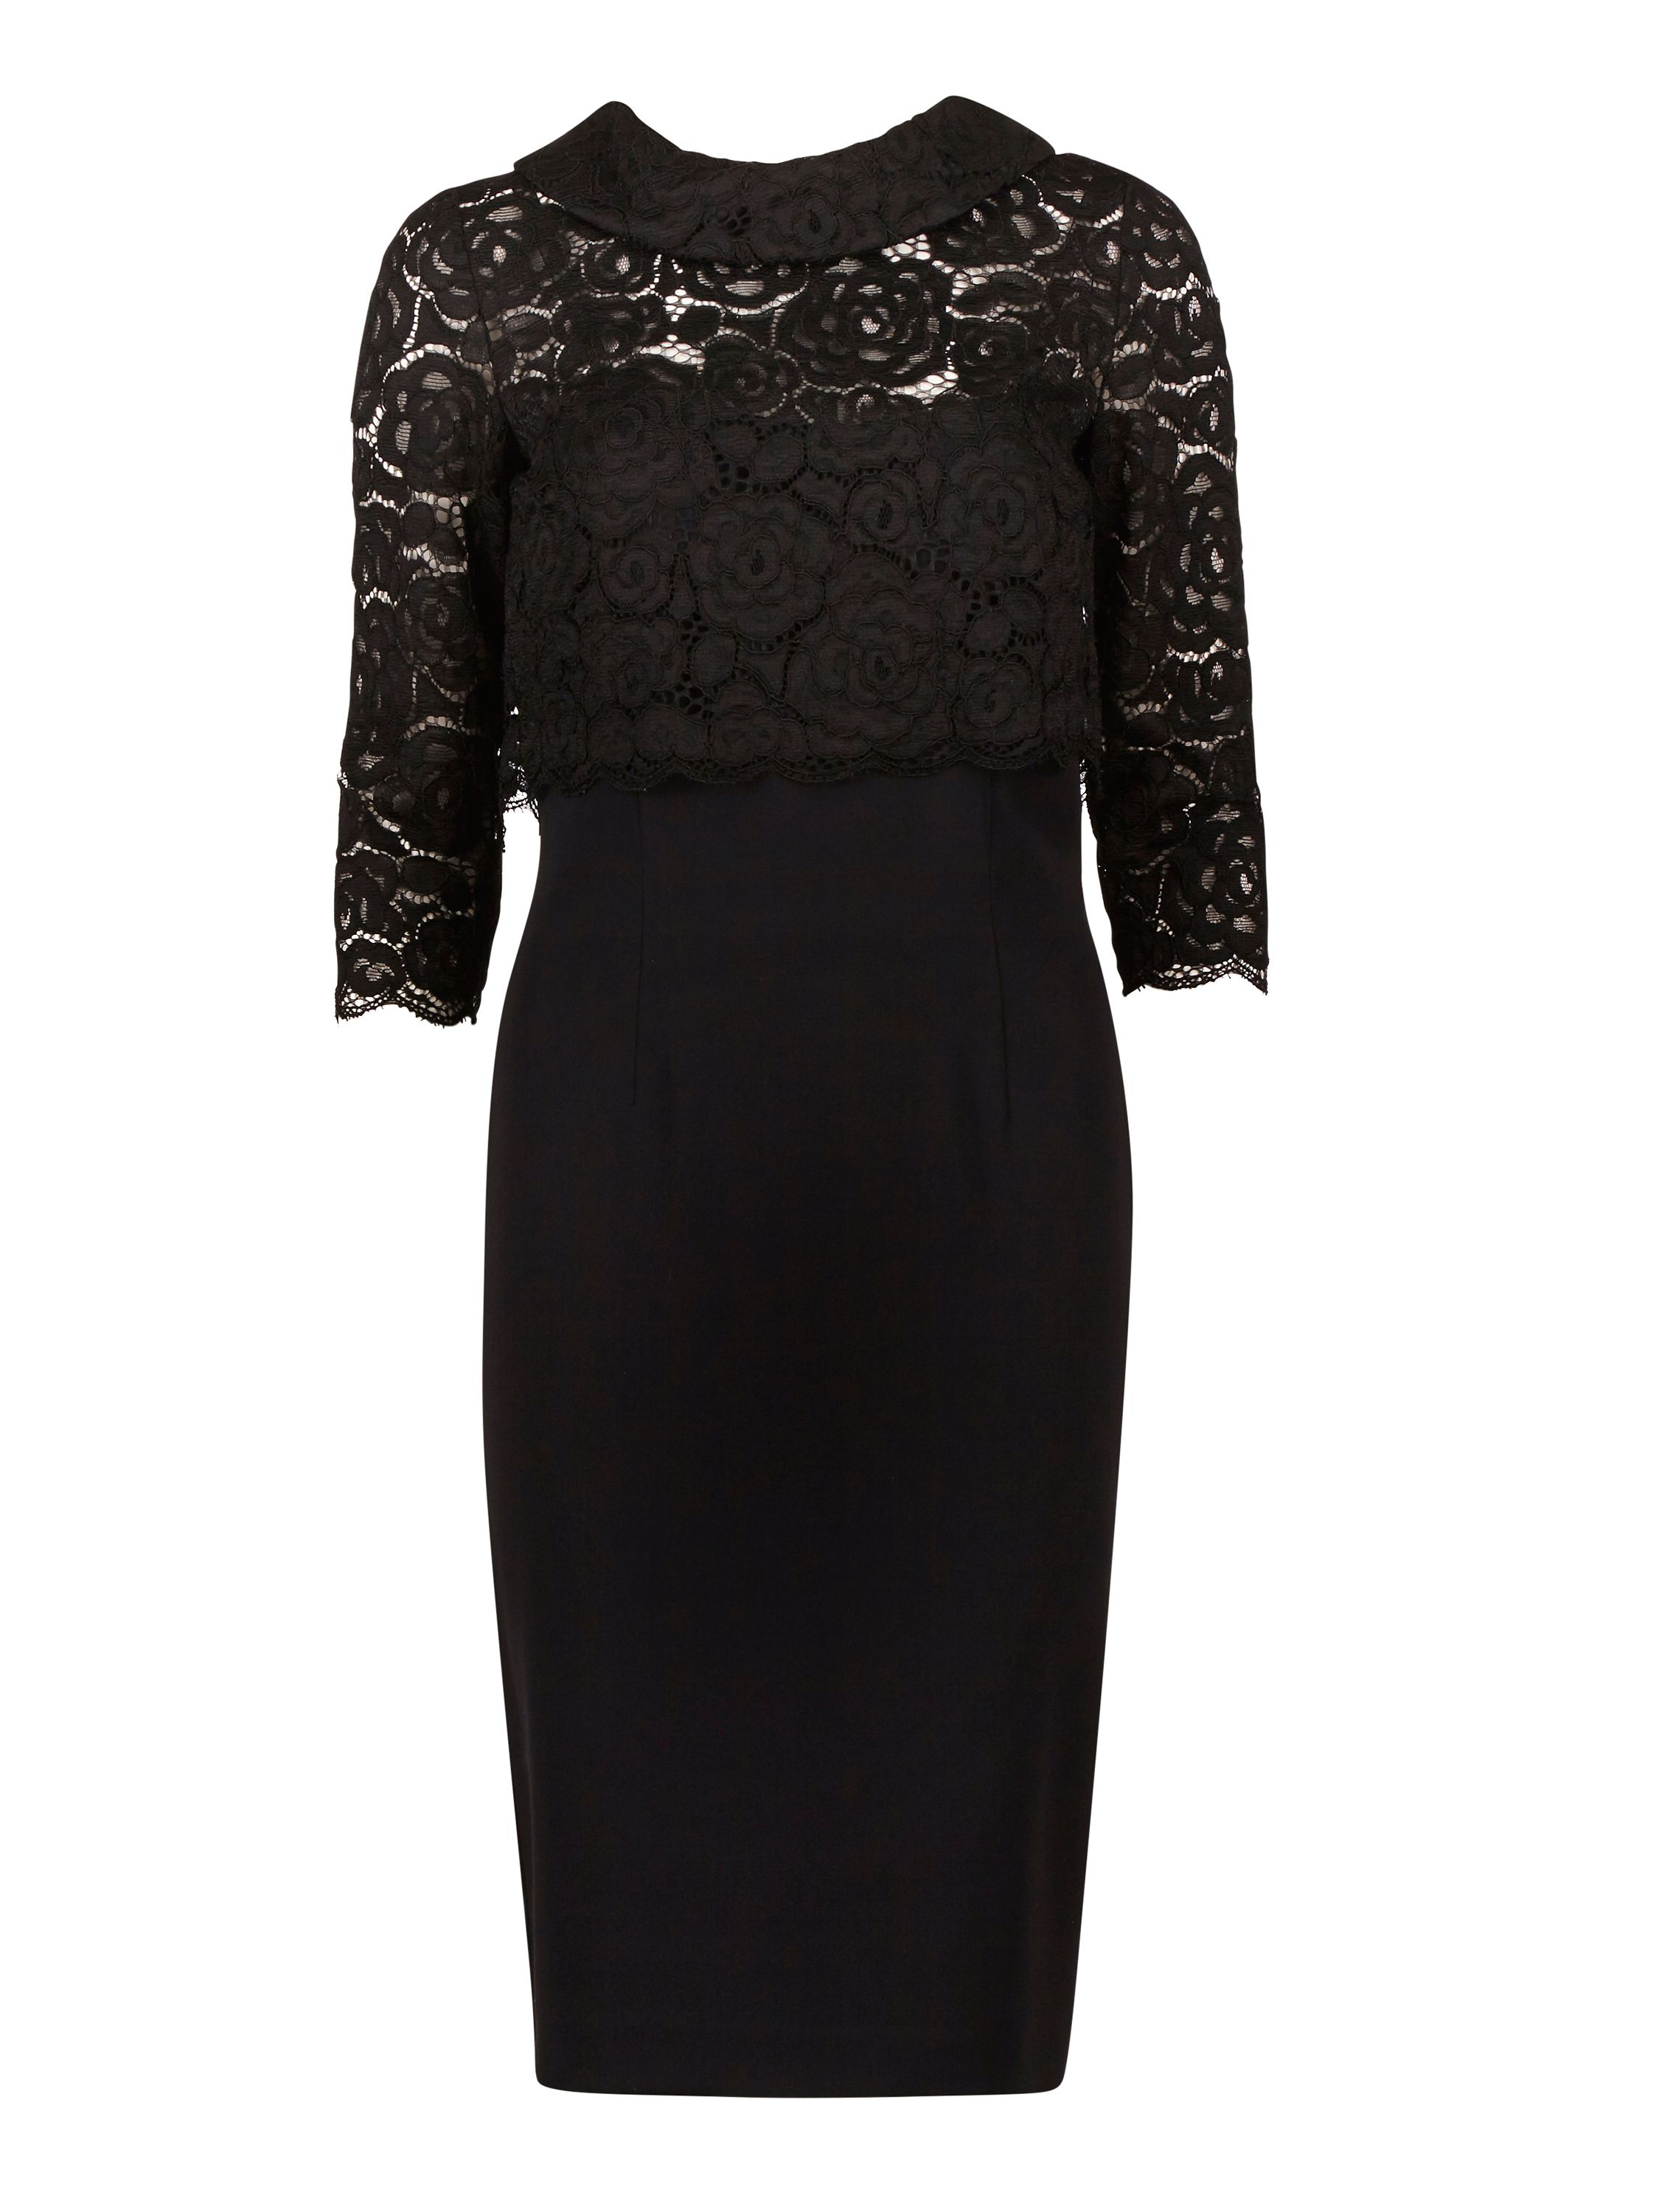 Gina Bacconi Moss Crepe Dress With Lace Overtop, Black